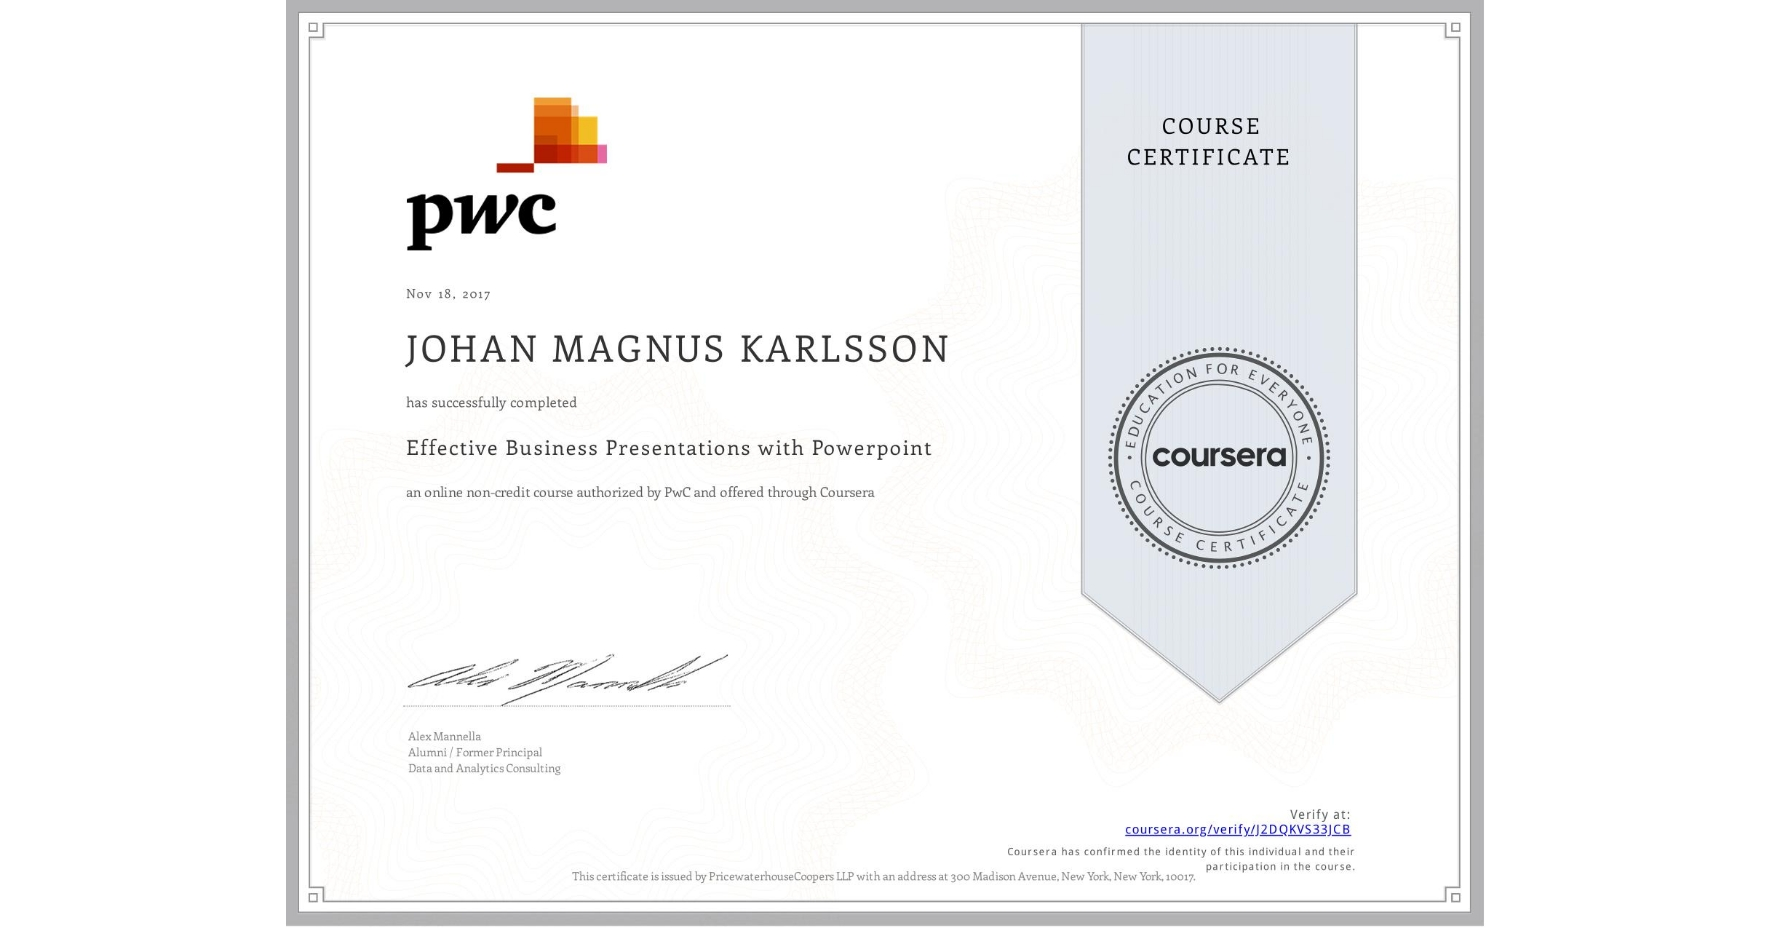 View certificate for JOHAN MAGNUS  KARLSSON, Effective Business Presentations with Powerpoint, an online non-credit course authorized by PwC and offered through Coursera